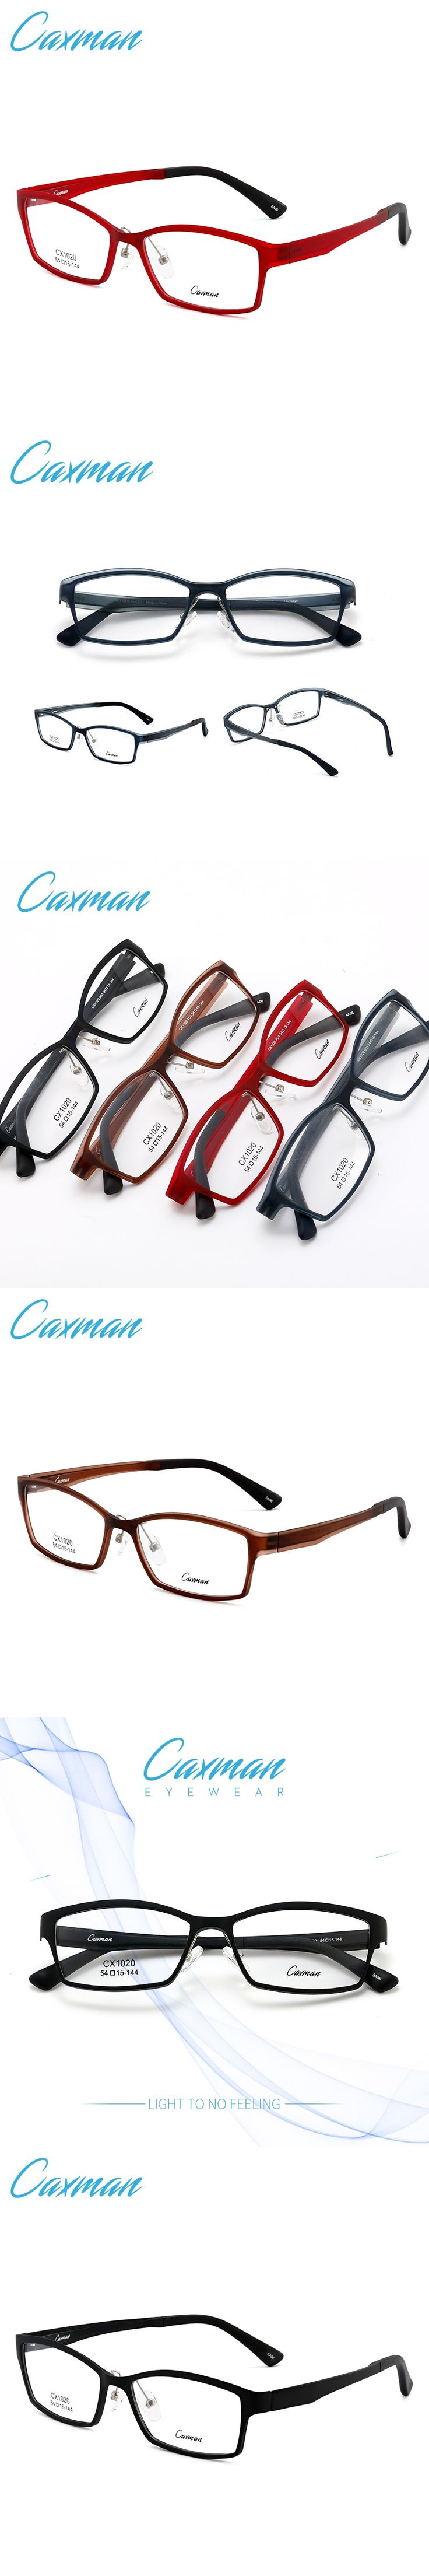 cheap women eyeglass frame eyewear glasses women optical prescription eyewear glasses frame men titanium eyeglasses